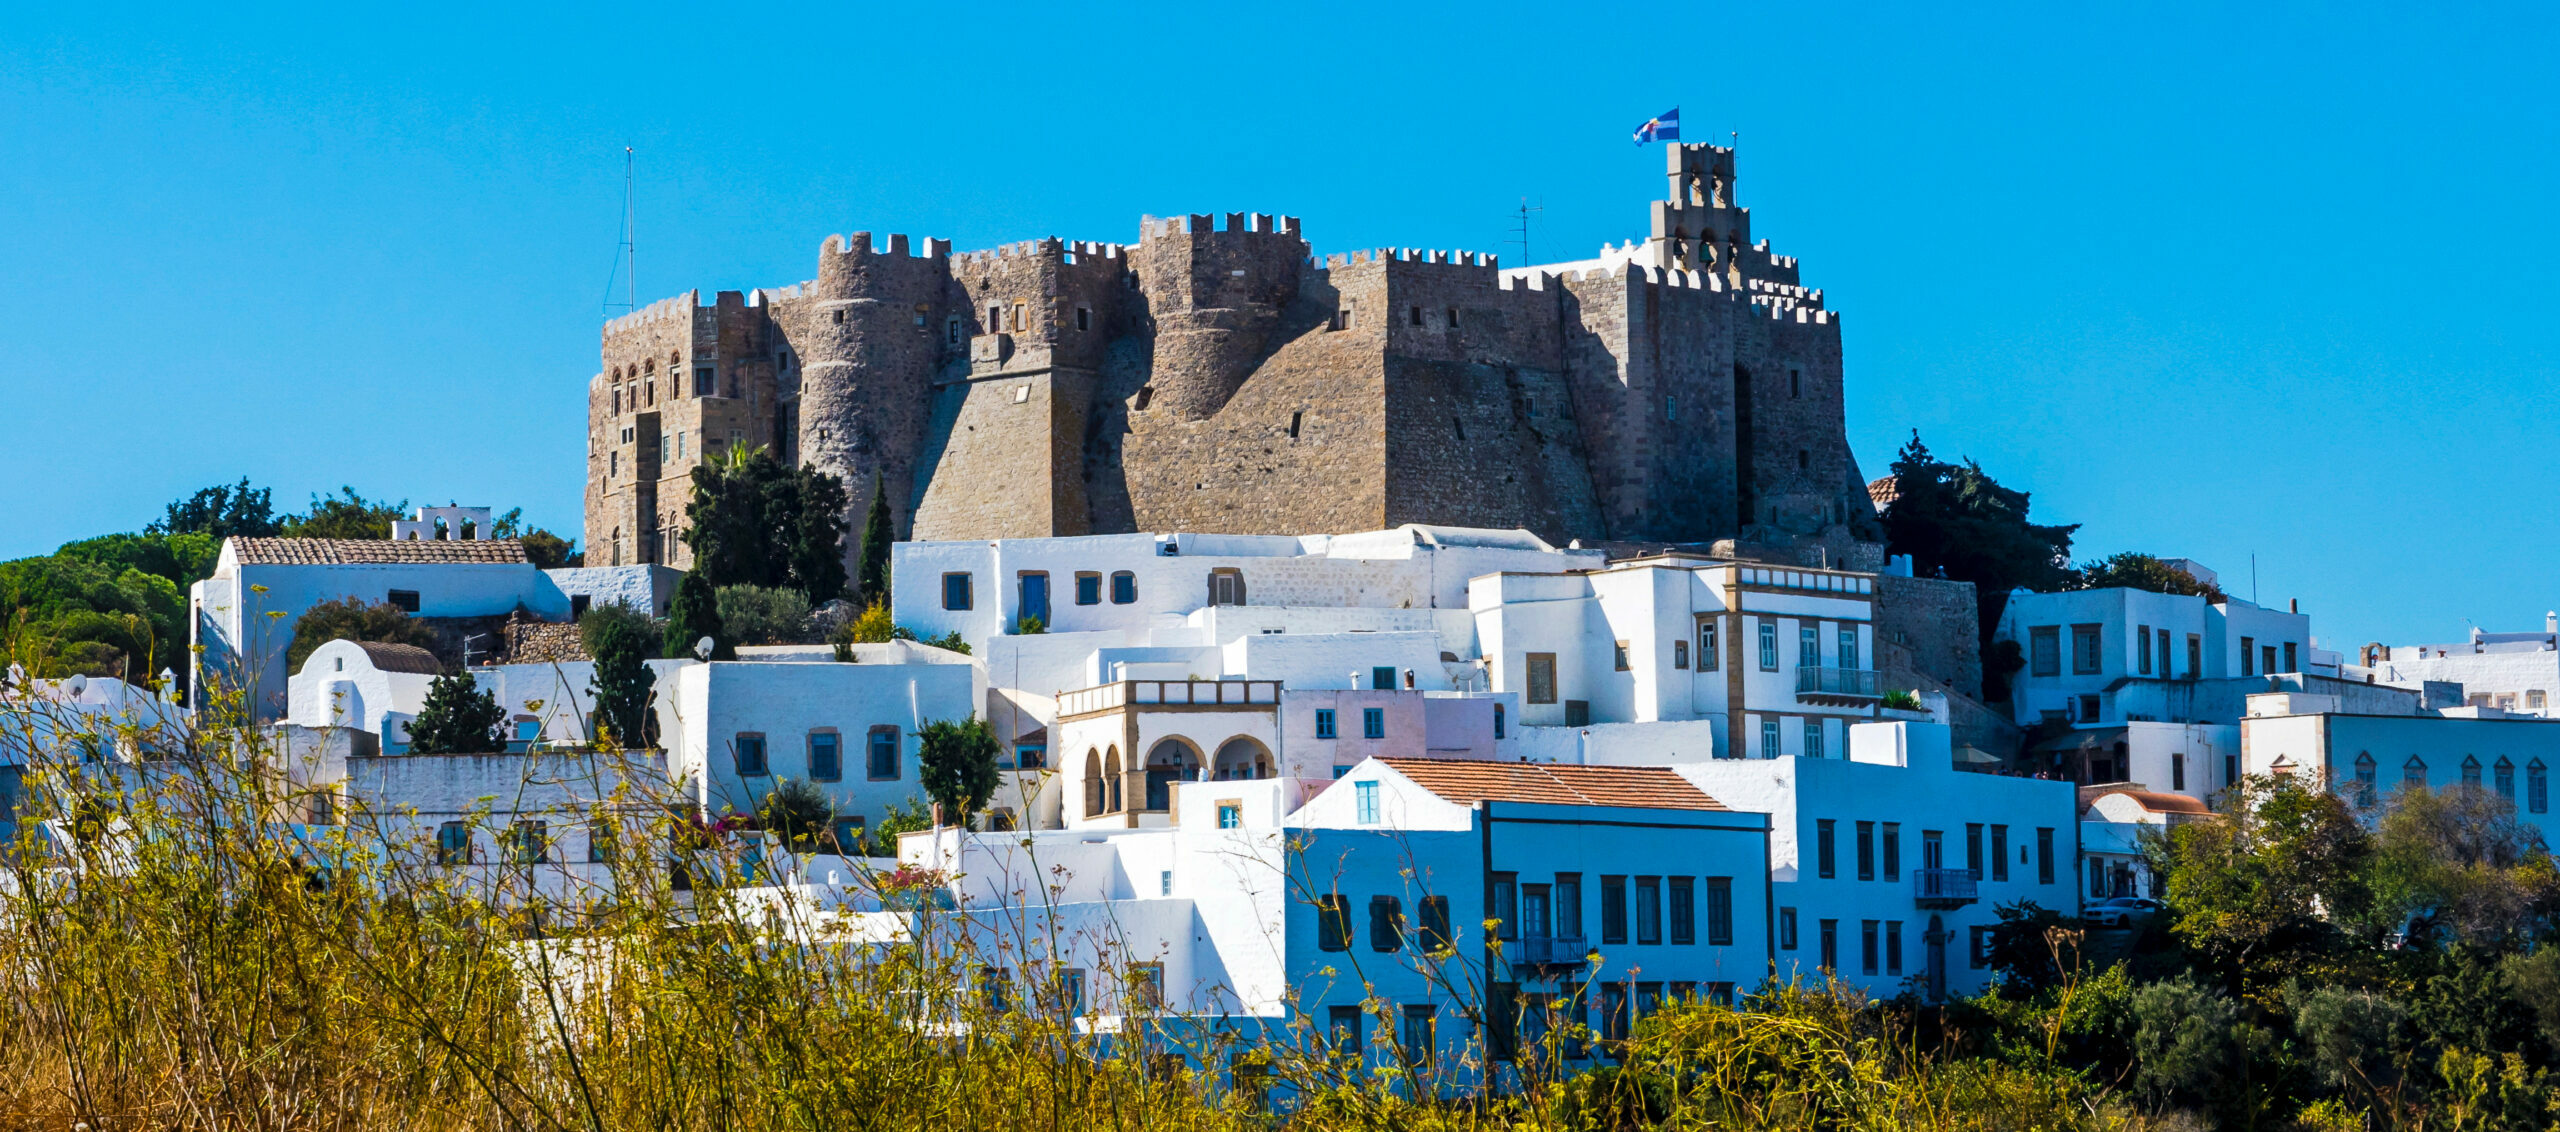 Patmos island: The Cave of the revelation, a place of peace and devoutness